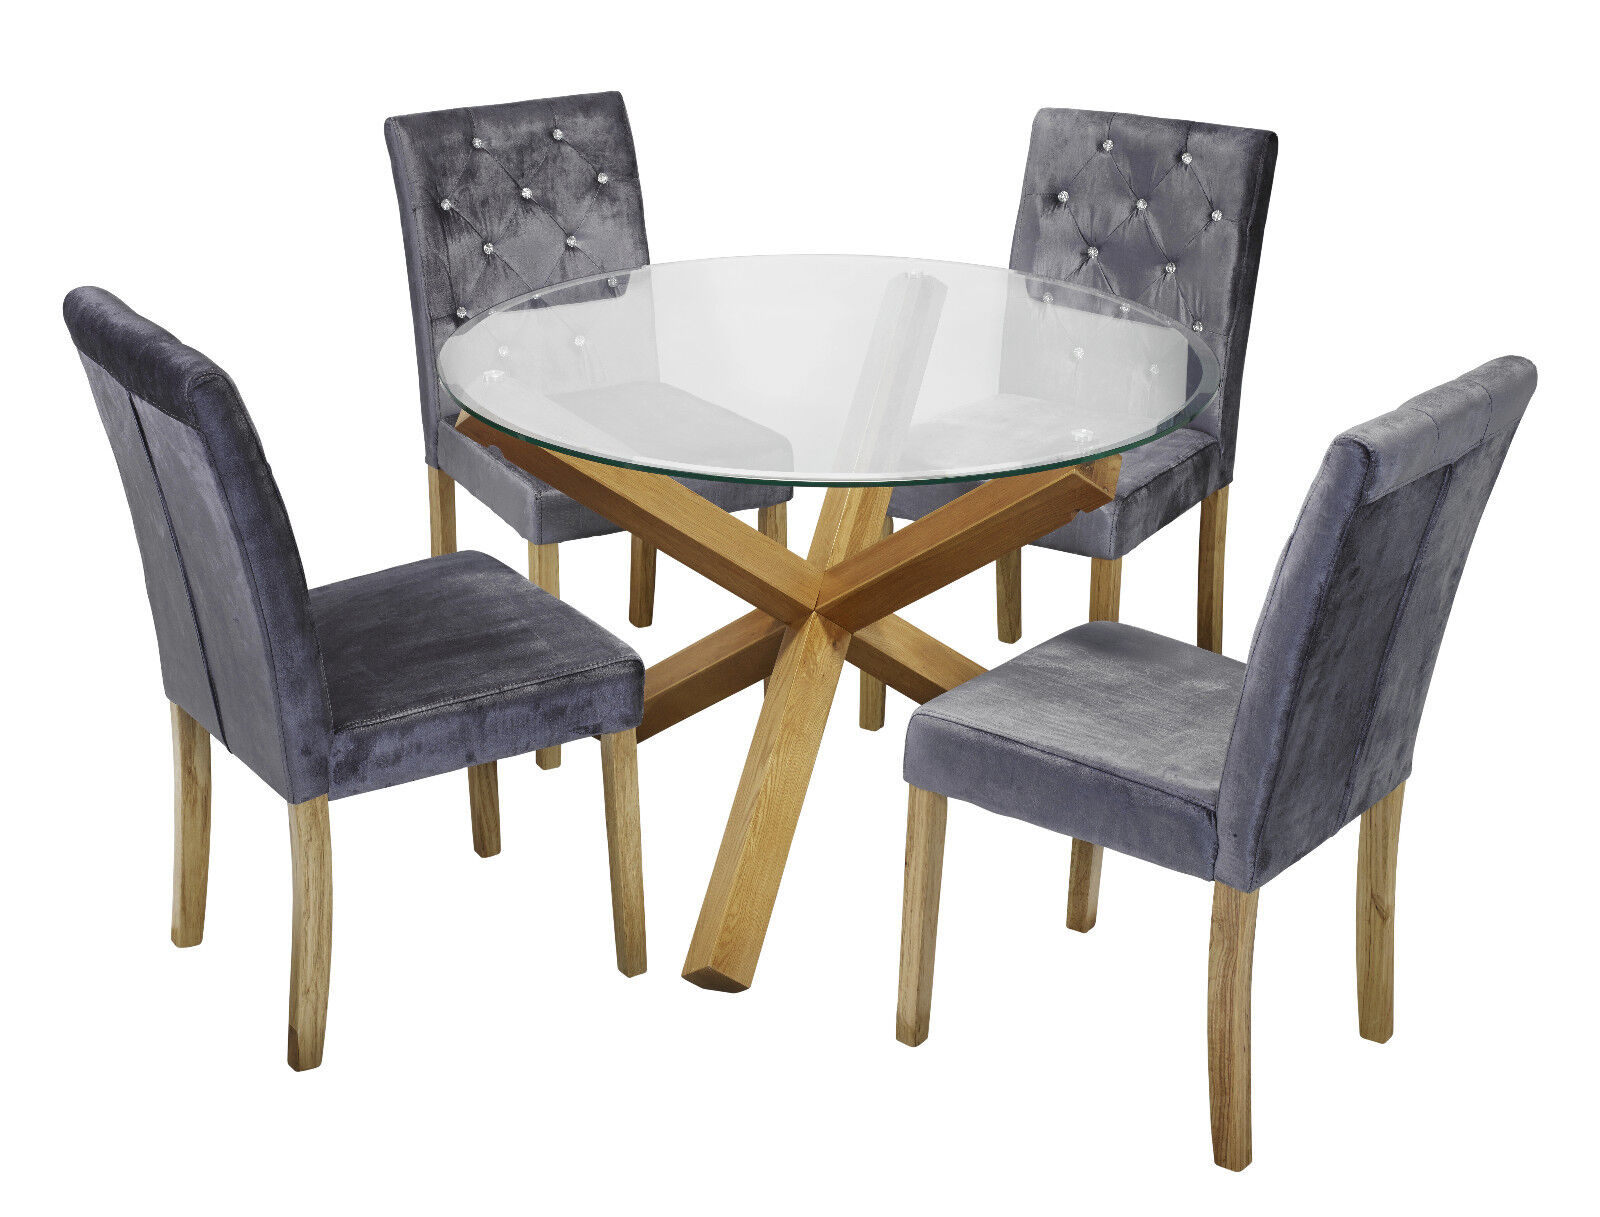 huge selection of 4ef8d 08f5e Details about Trend Solid Oak Round Glass Top Dining Table & 4 Amour Silver  Fabric Chair Set